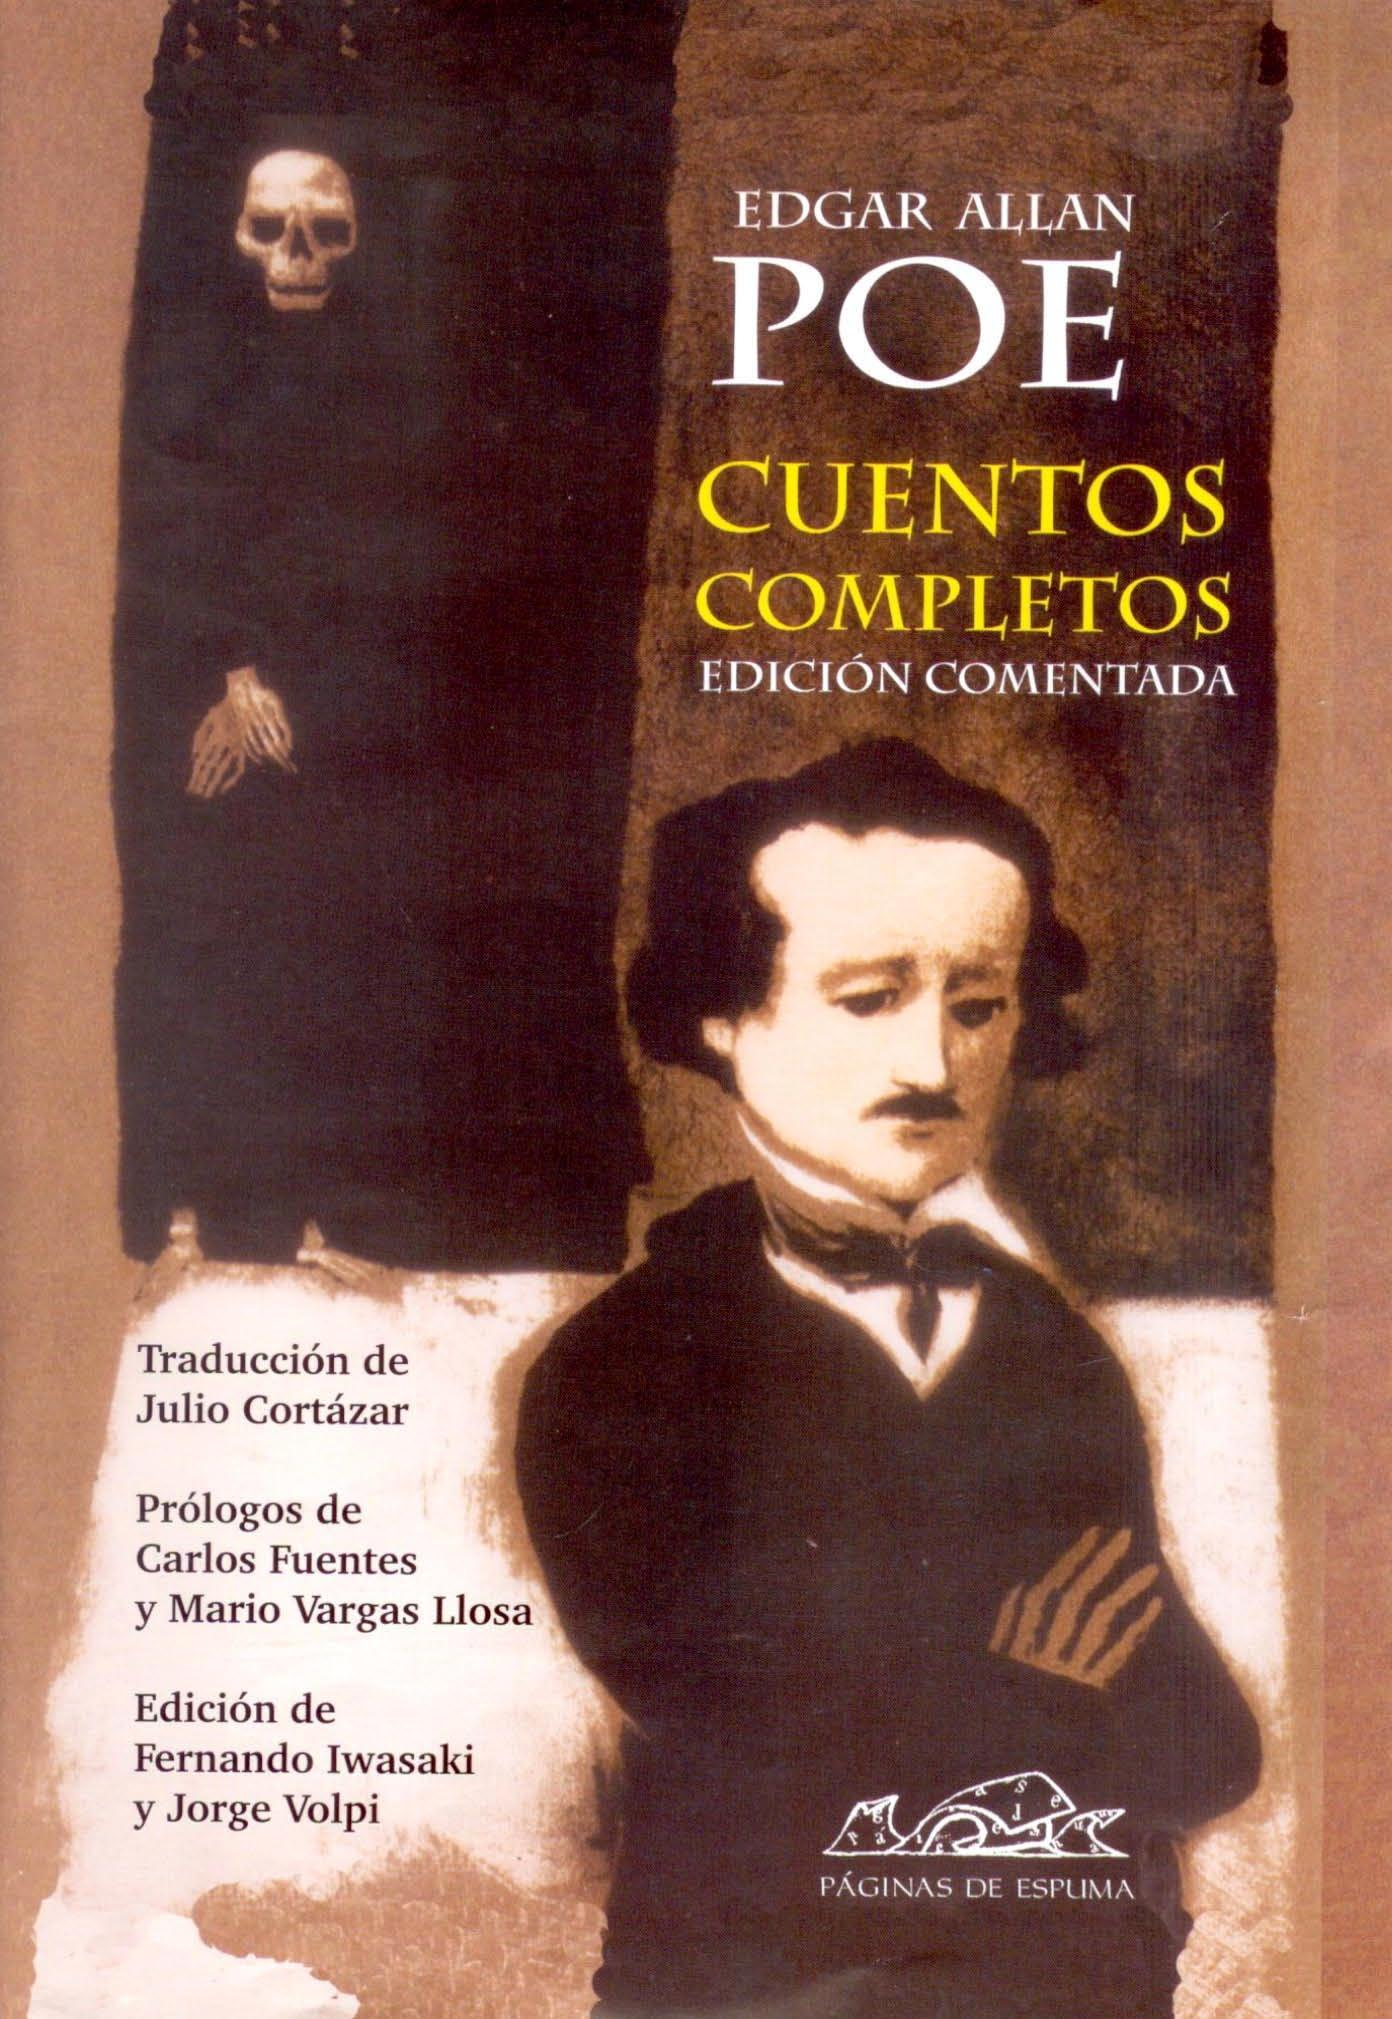 Cuentos-Completos-de-Edgar-Allan-Poe-book-tag-los-7-pecados-capitales-interesantes-libros-opinion-nominaciones-blogs-blogger